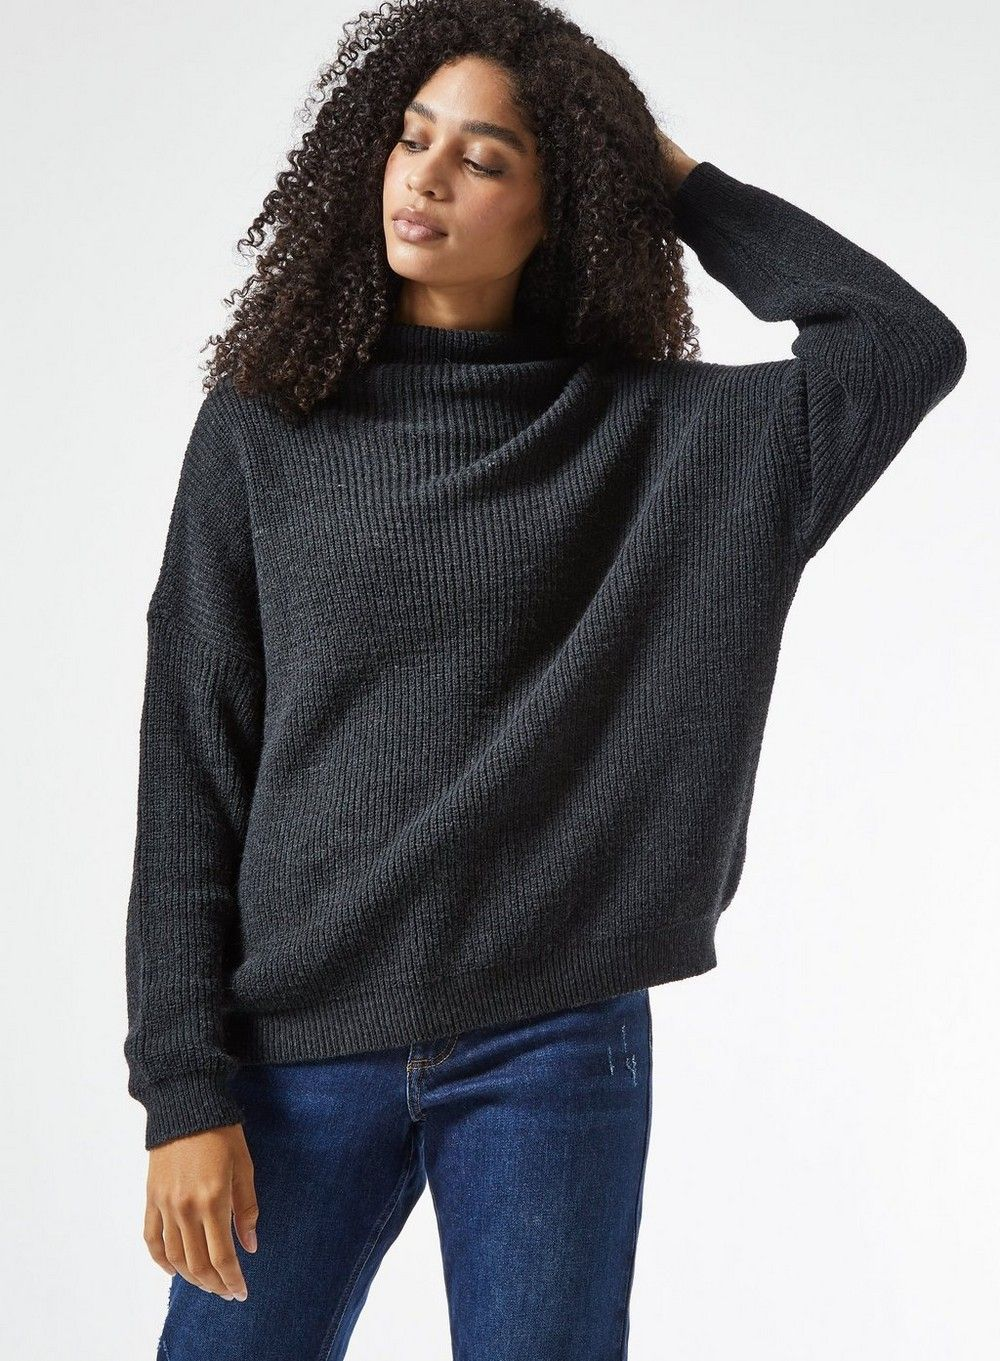 Dorothy Perkins Womens Charcoal Slouchy Batwing Sleeve Jumper Sweater Pullover